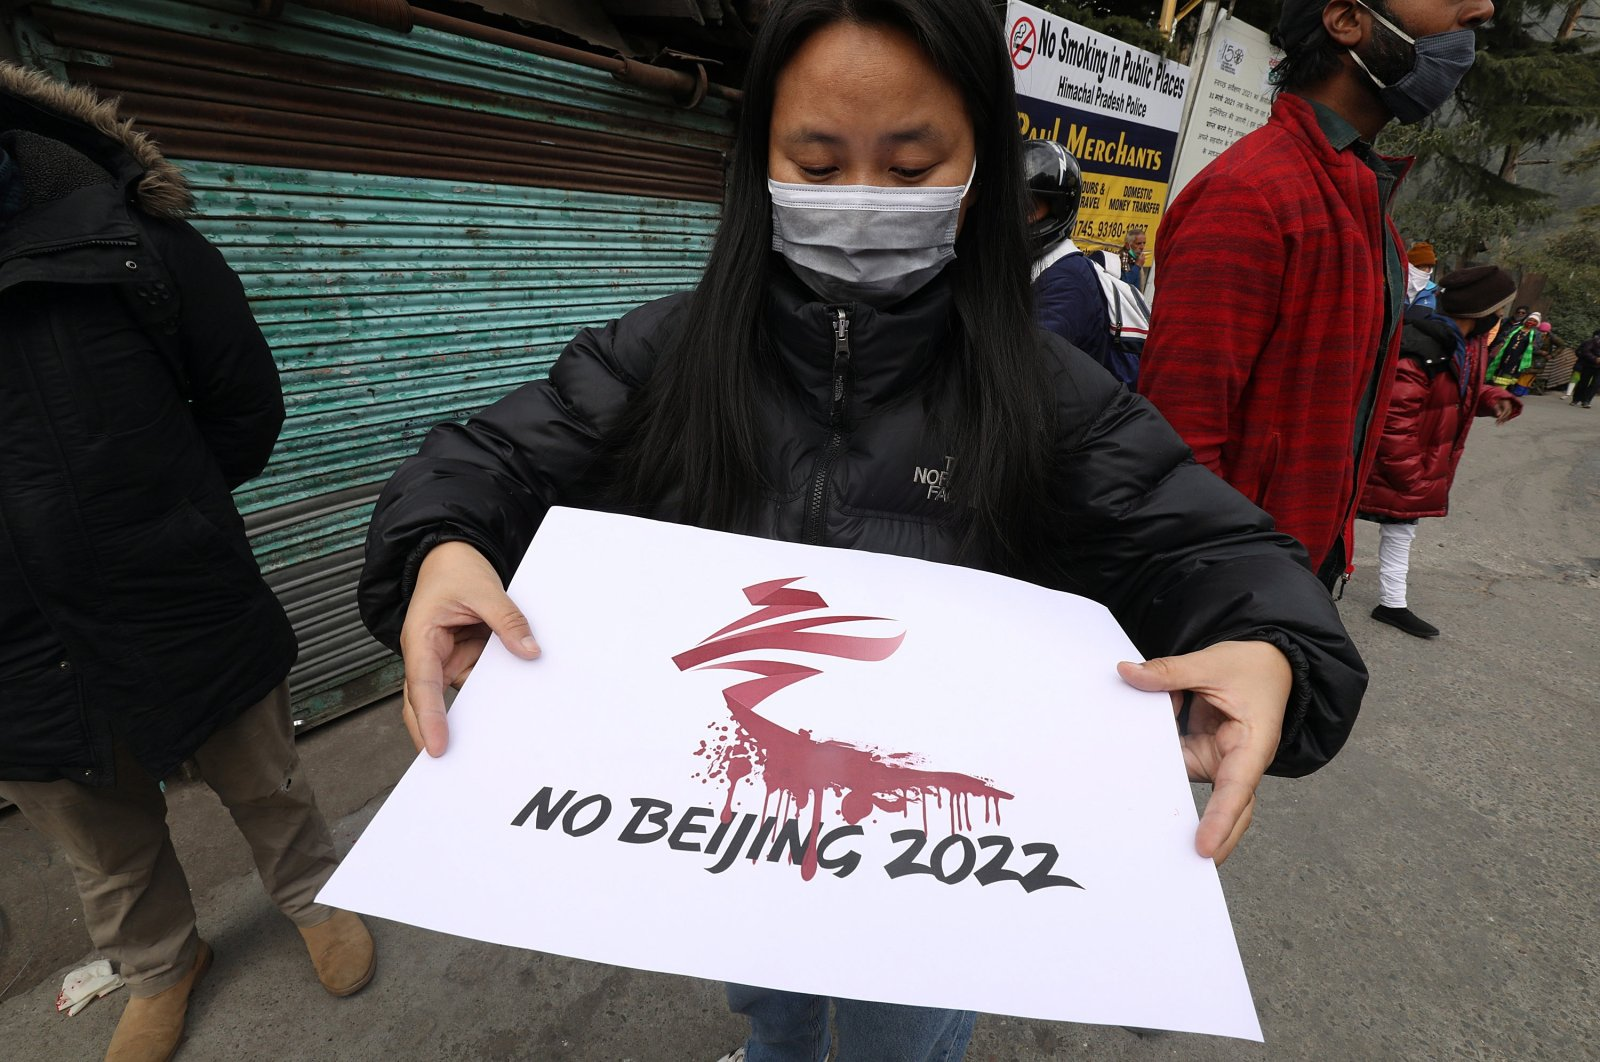 Tibetans living in exile and activists belonging to different NGOs hold placards during a protest against alleged Chinese atrocities and to boycott the 2022 Beijing Winter Olympics, at McLeod Ganj near Dharamsala, India, Feb. 3, 2021.